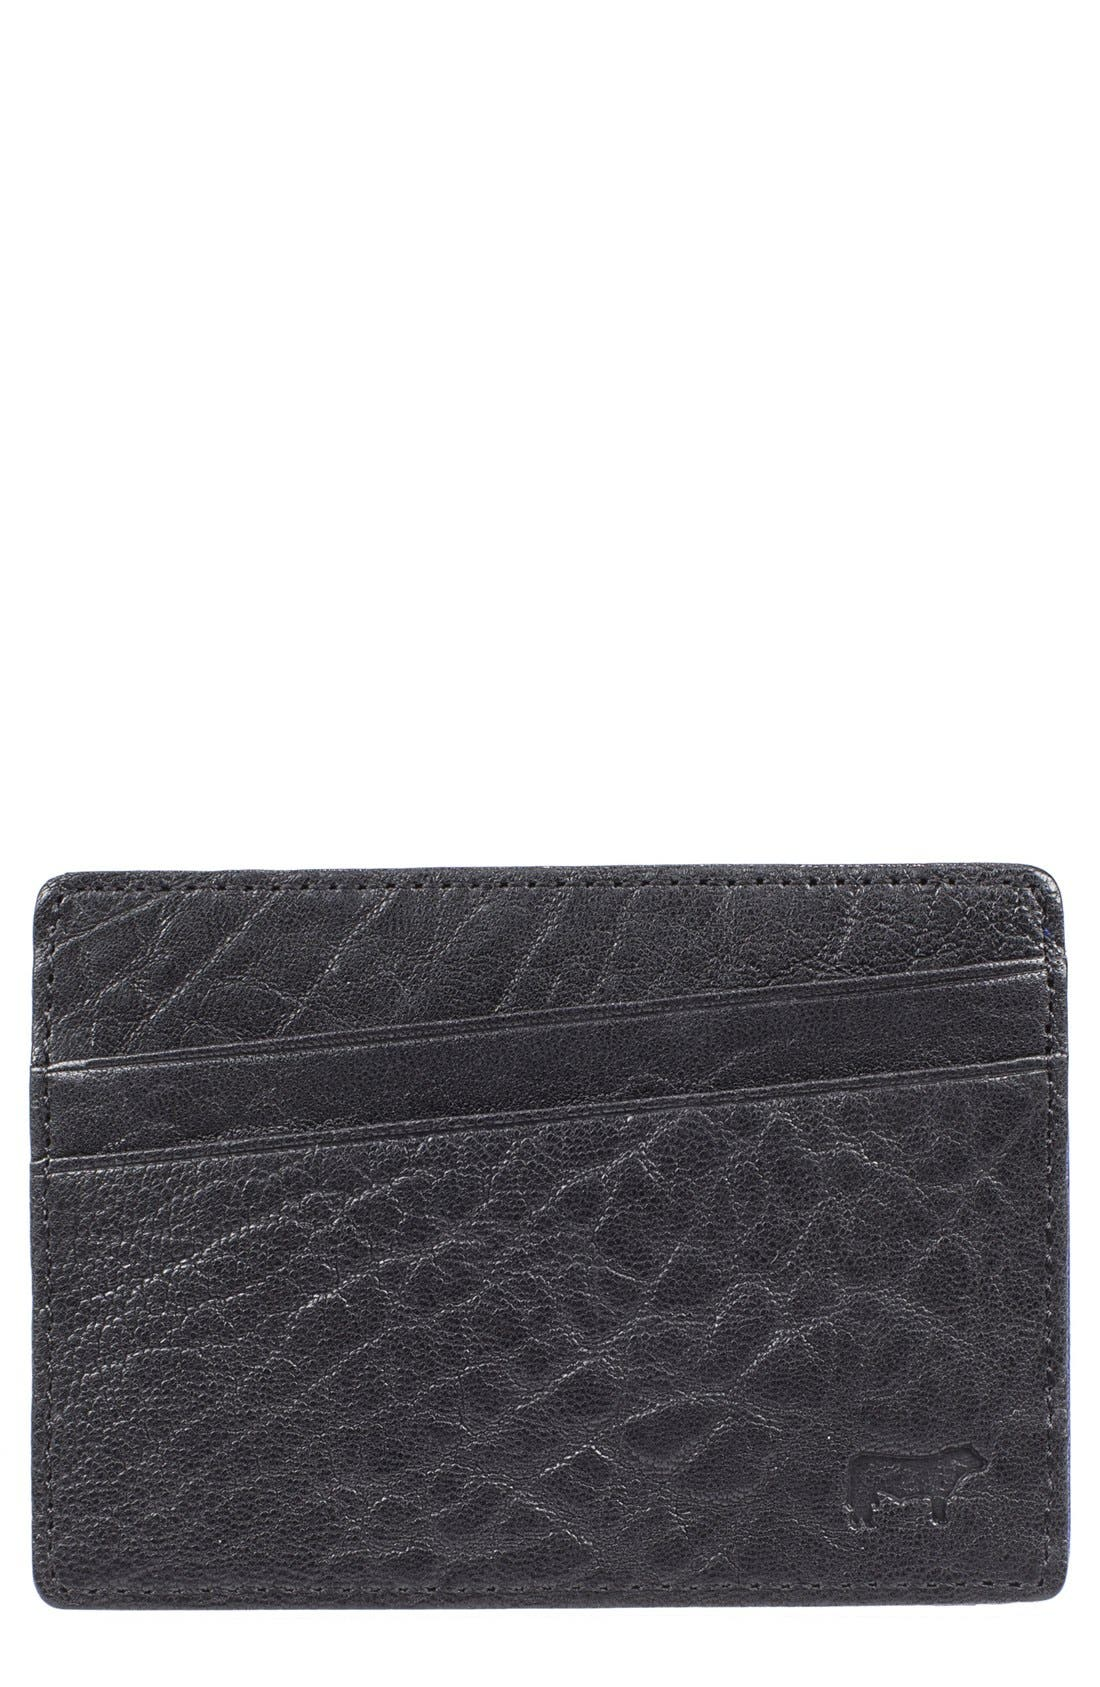 'Quip' Leather Card Case,                         Main,                         color, 012